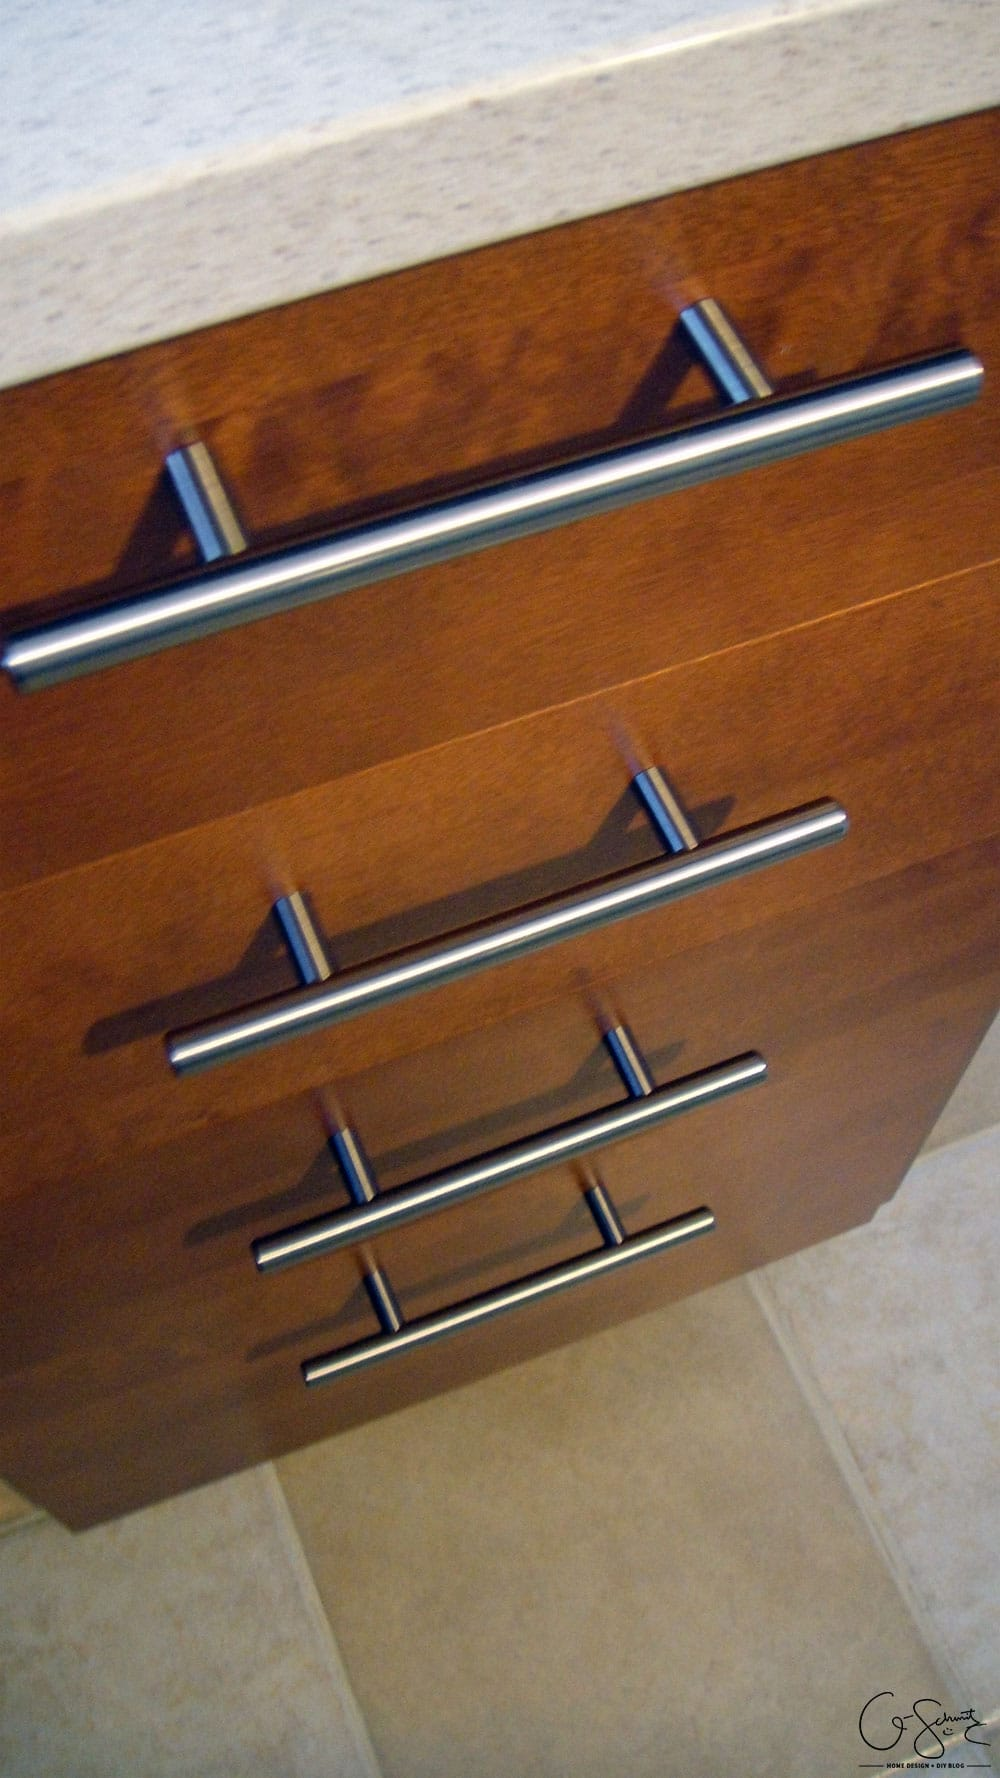 How to install kitchen knobs and pulls on the Ikea Akurum kitchen cabinets (but you can definitely use these great DIY tips and tricks for other cabinets as well!)